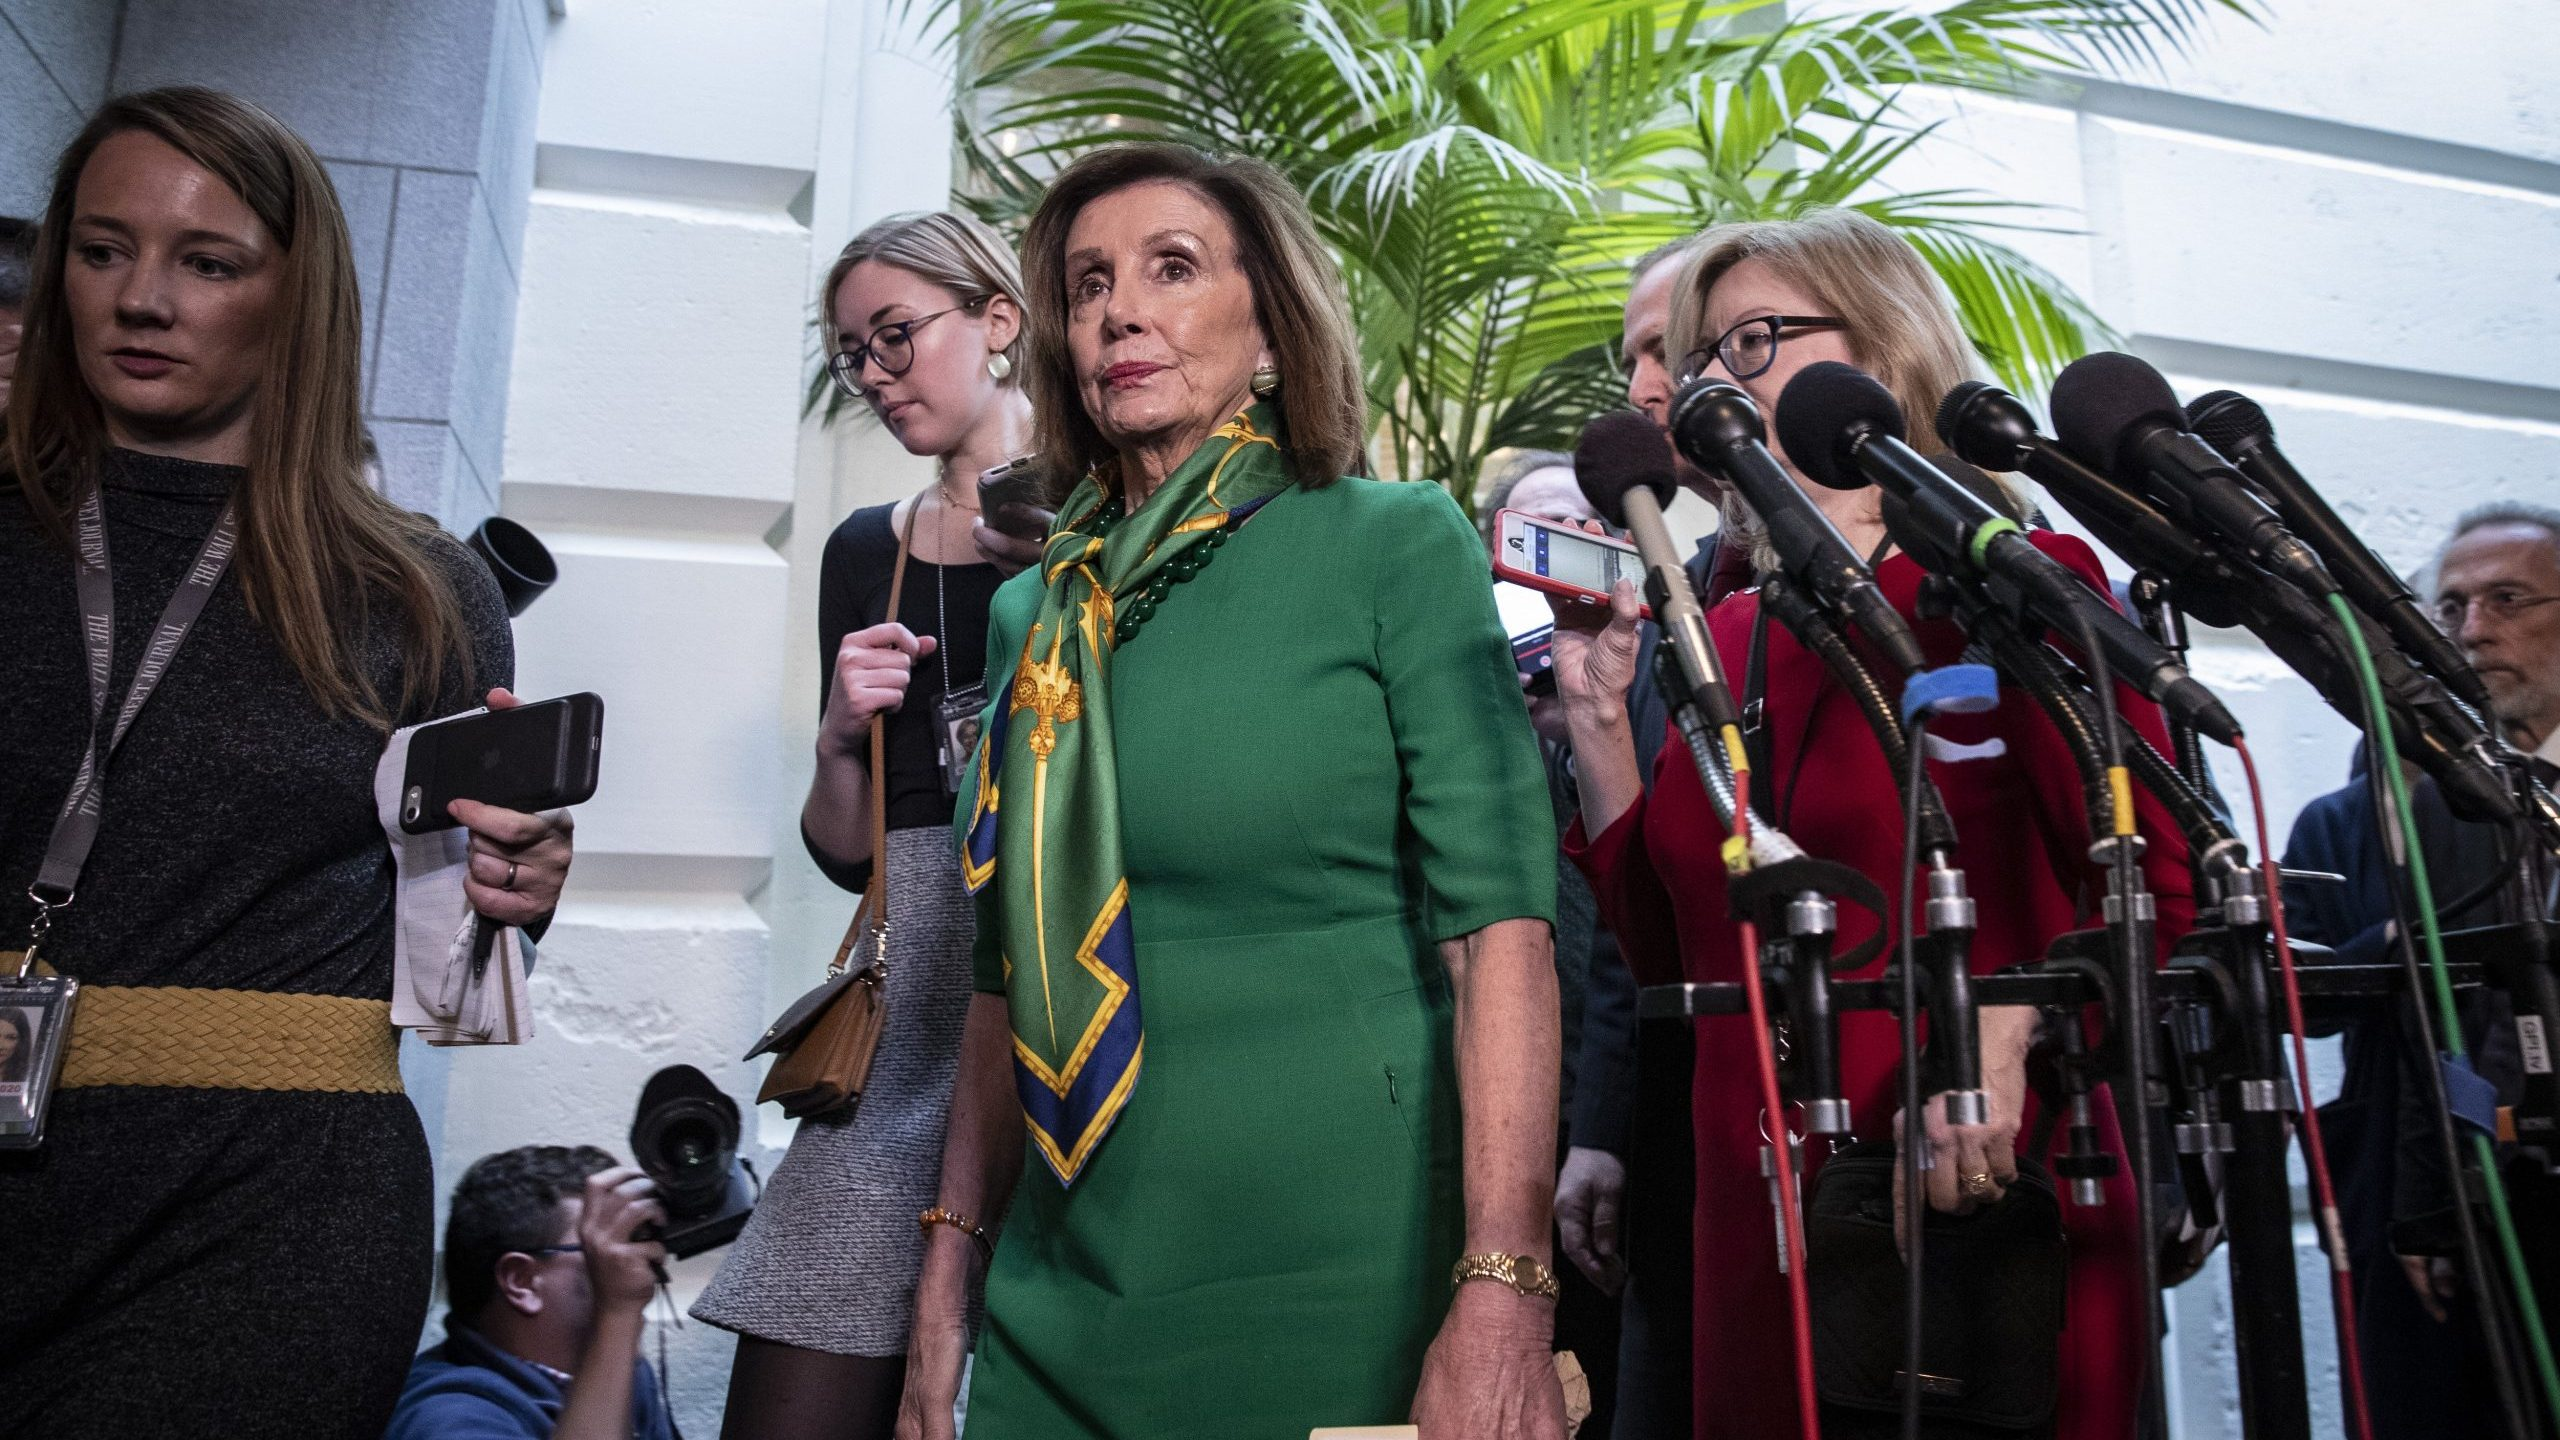 Speaker of the House Nancy Pelosi (D-CA) leaves a House Democratic Caucus meeting at the U.S. Capitol on Jan. 14, 2020 in Washington, D.C. (Credit: Drew Angerer/Getty Images)